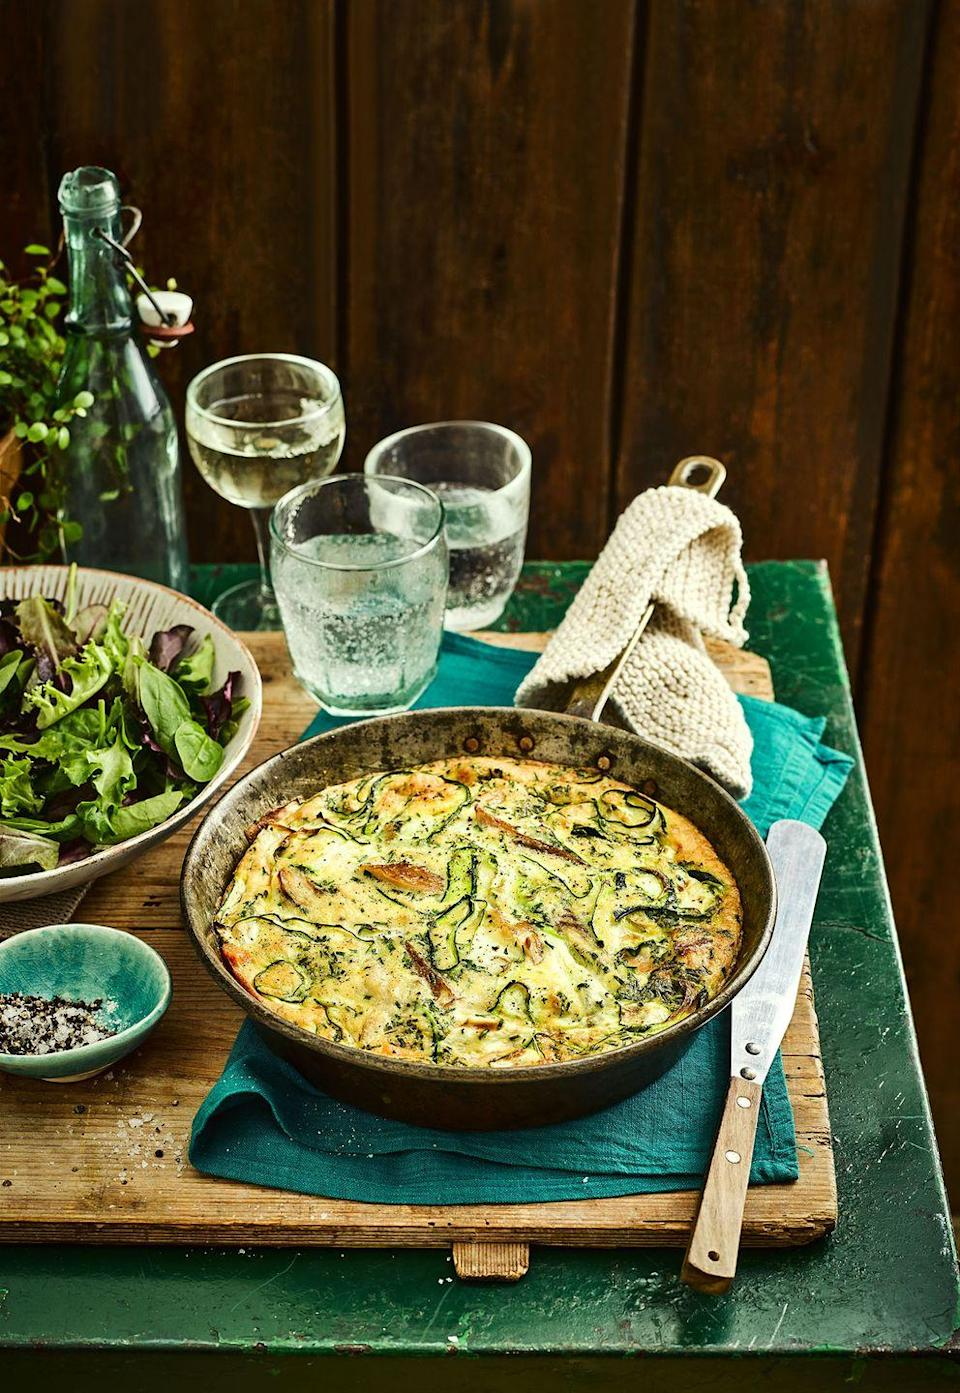 """<p>Our take on the classic Spanish omelette. The sweetness of the potato and smokiness of the mackerel make for a great speedy supper.</p><p><strong>Recipe: <a href=""""https://www.goodhousekeeping.com/uk/food/recipes/a24661249/mackerel-frittata/"""" rel=""""nofollow noopener"""" target=""""_blank"""" data-ylk=""""slk:Smoked Mackerel and Sweet Potato Frittata"""" class=""""link rapid-noclick-resp"""">Smoked Mackerel and Sweet Potato Frittata</a></strong></p>"""